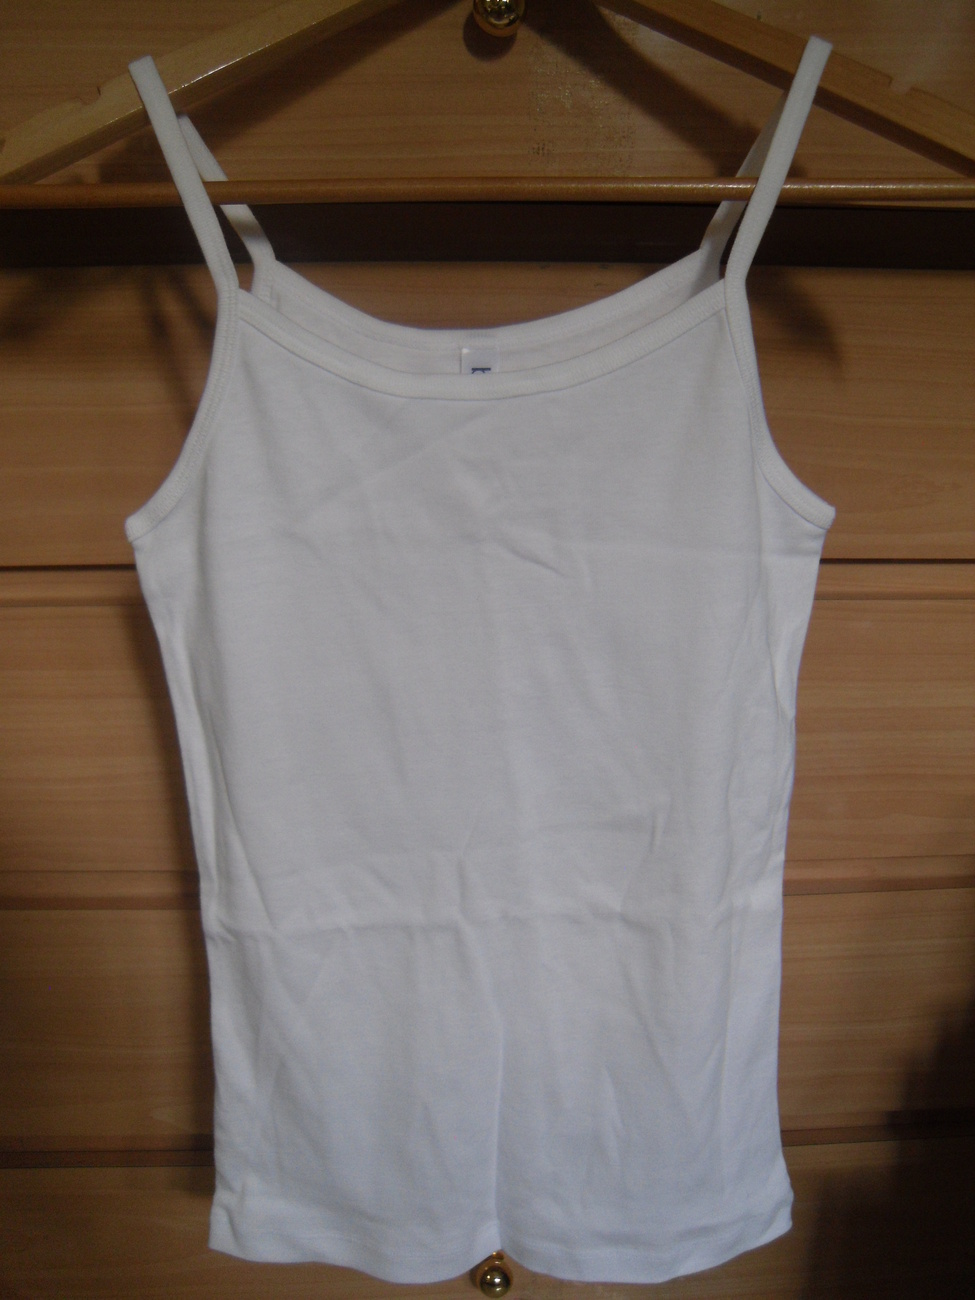 Bella White Spaghetti Strap Tank Top Size Medium 100% Cotton NEW